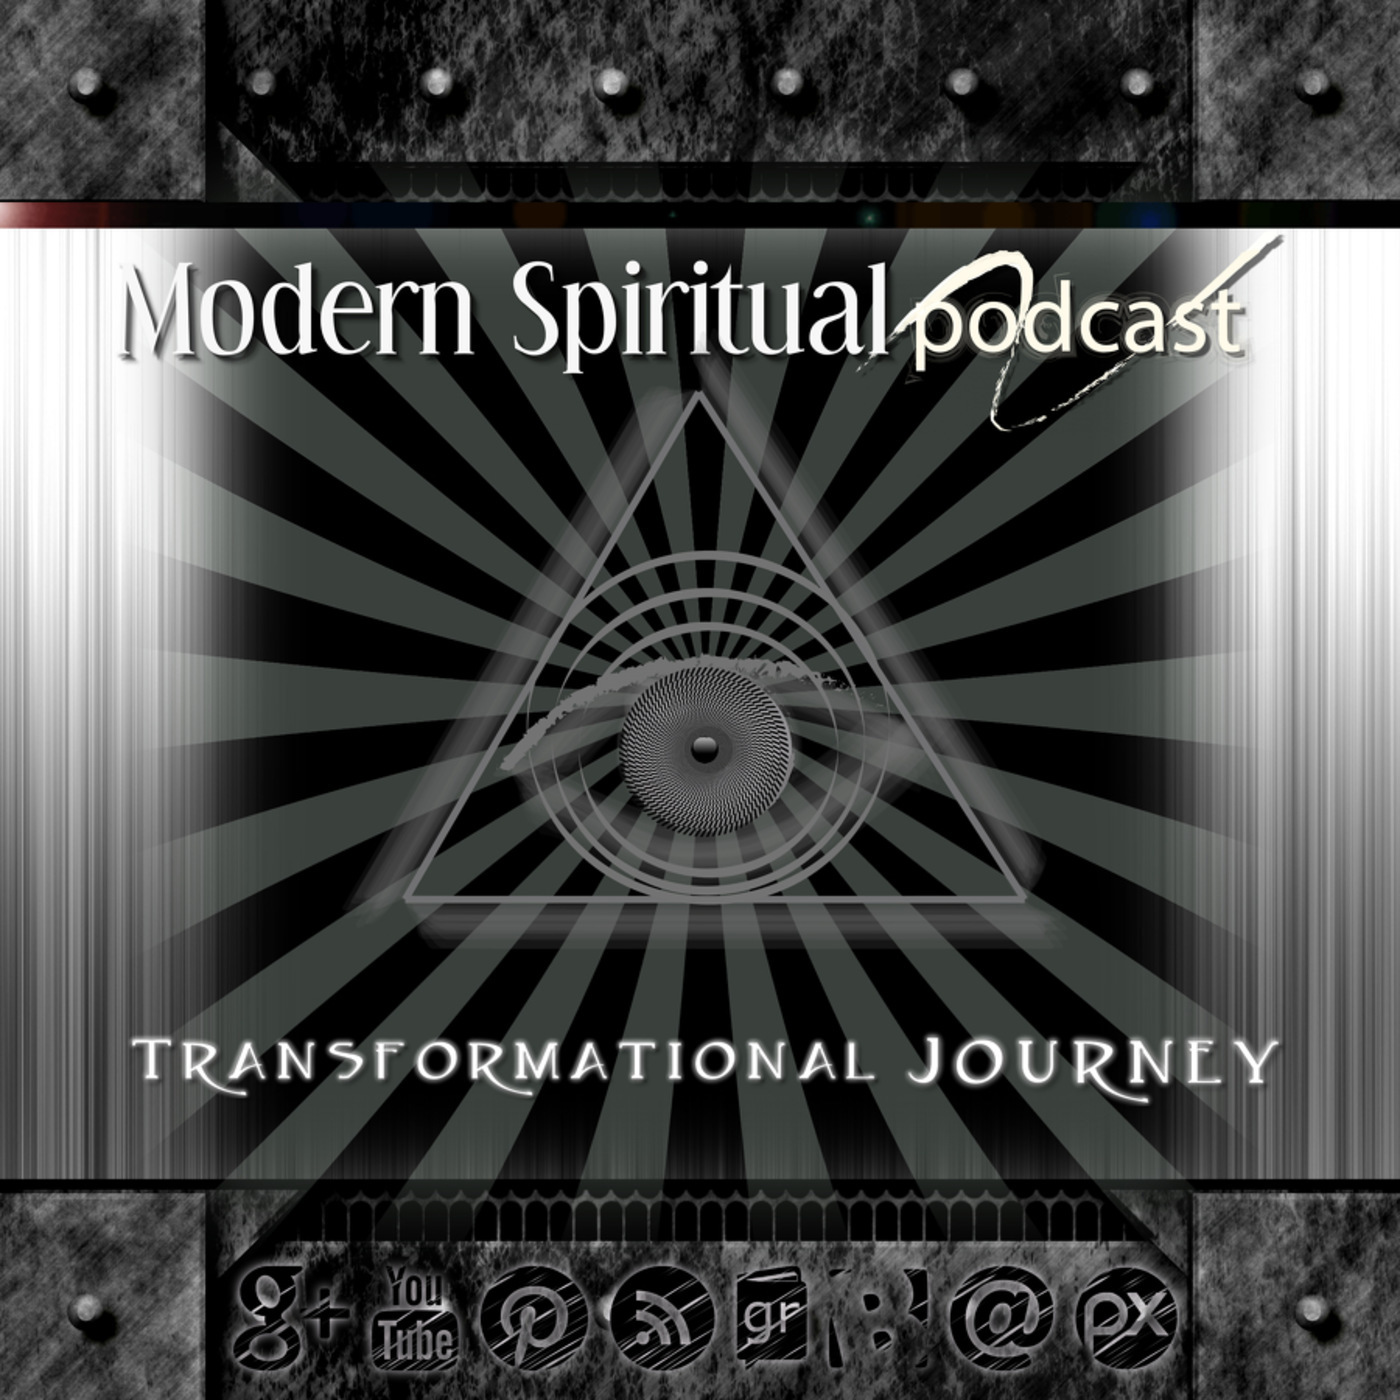 The Modern Spiritual Life Coaching Podcast